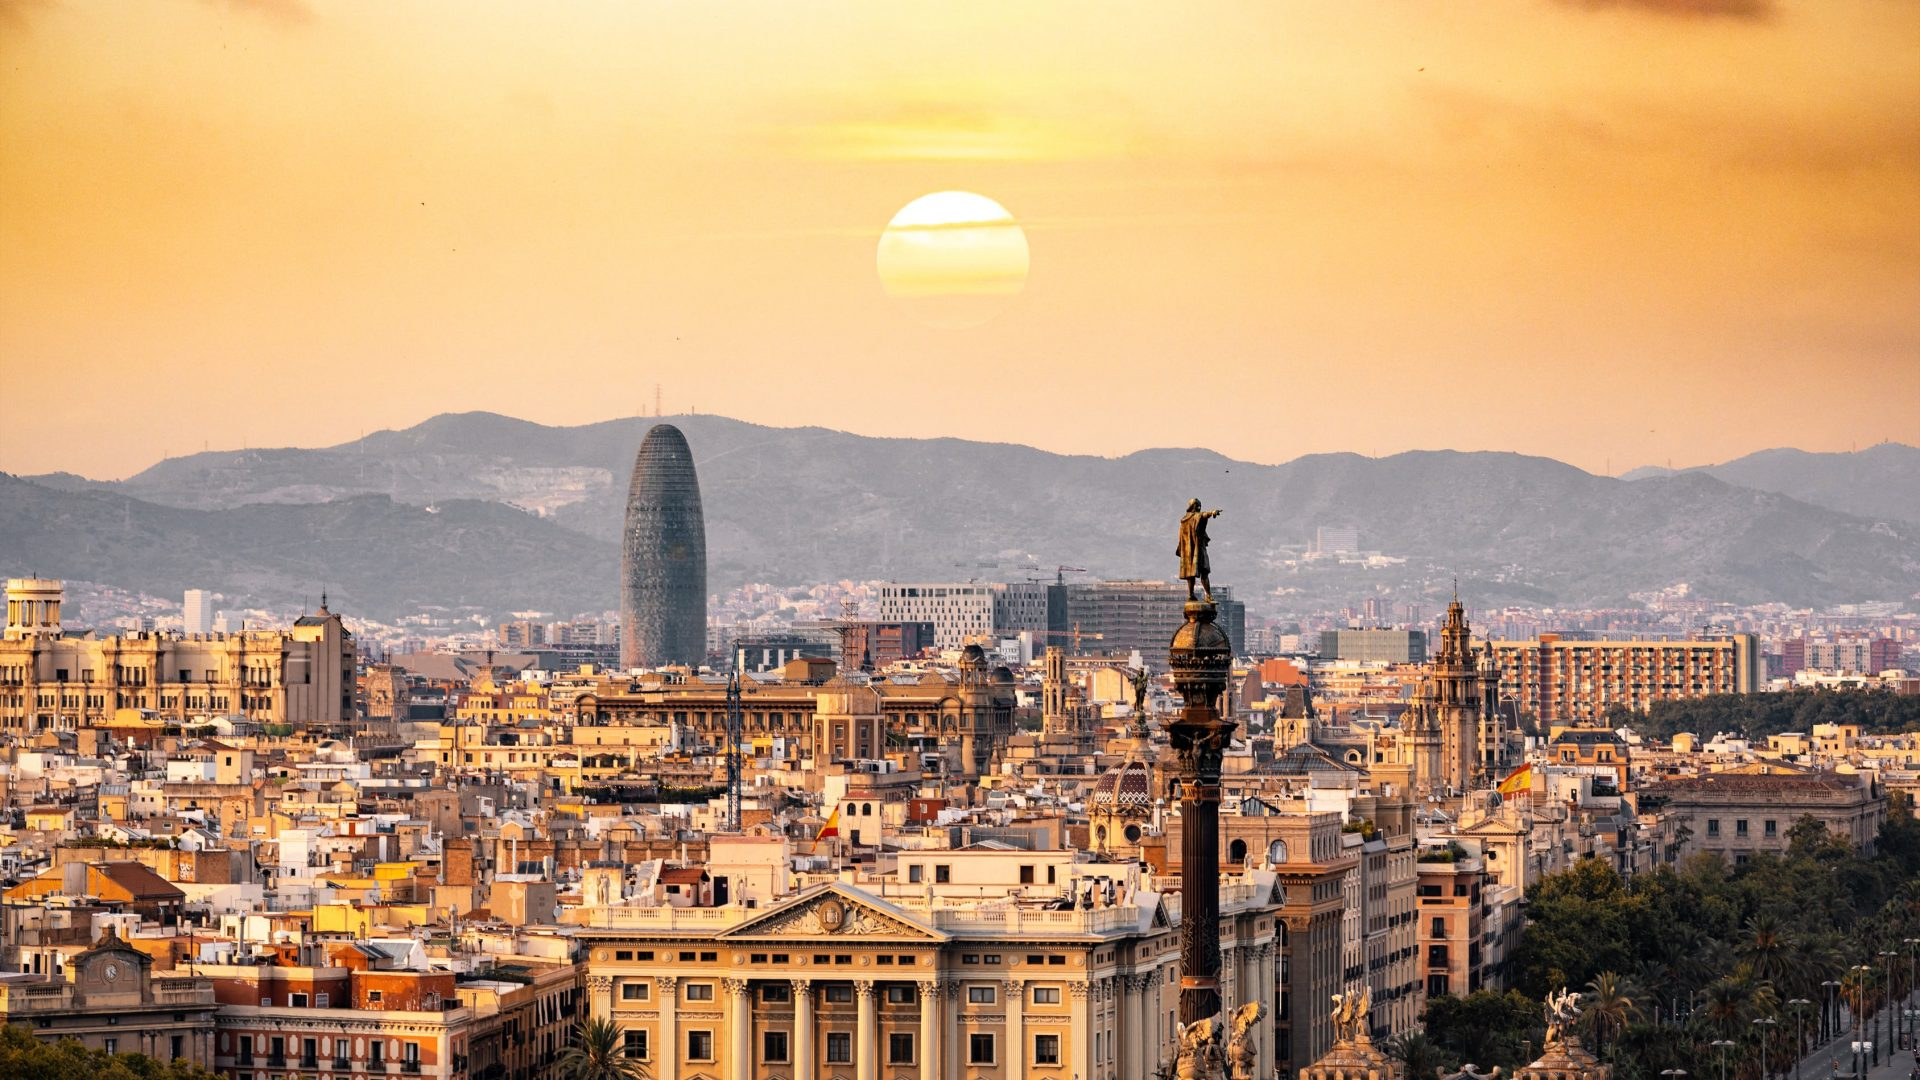 Barcelona skyline during sunset